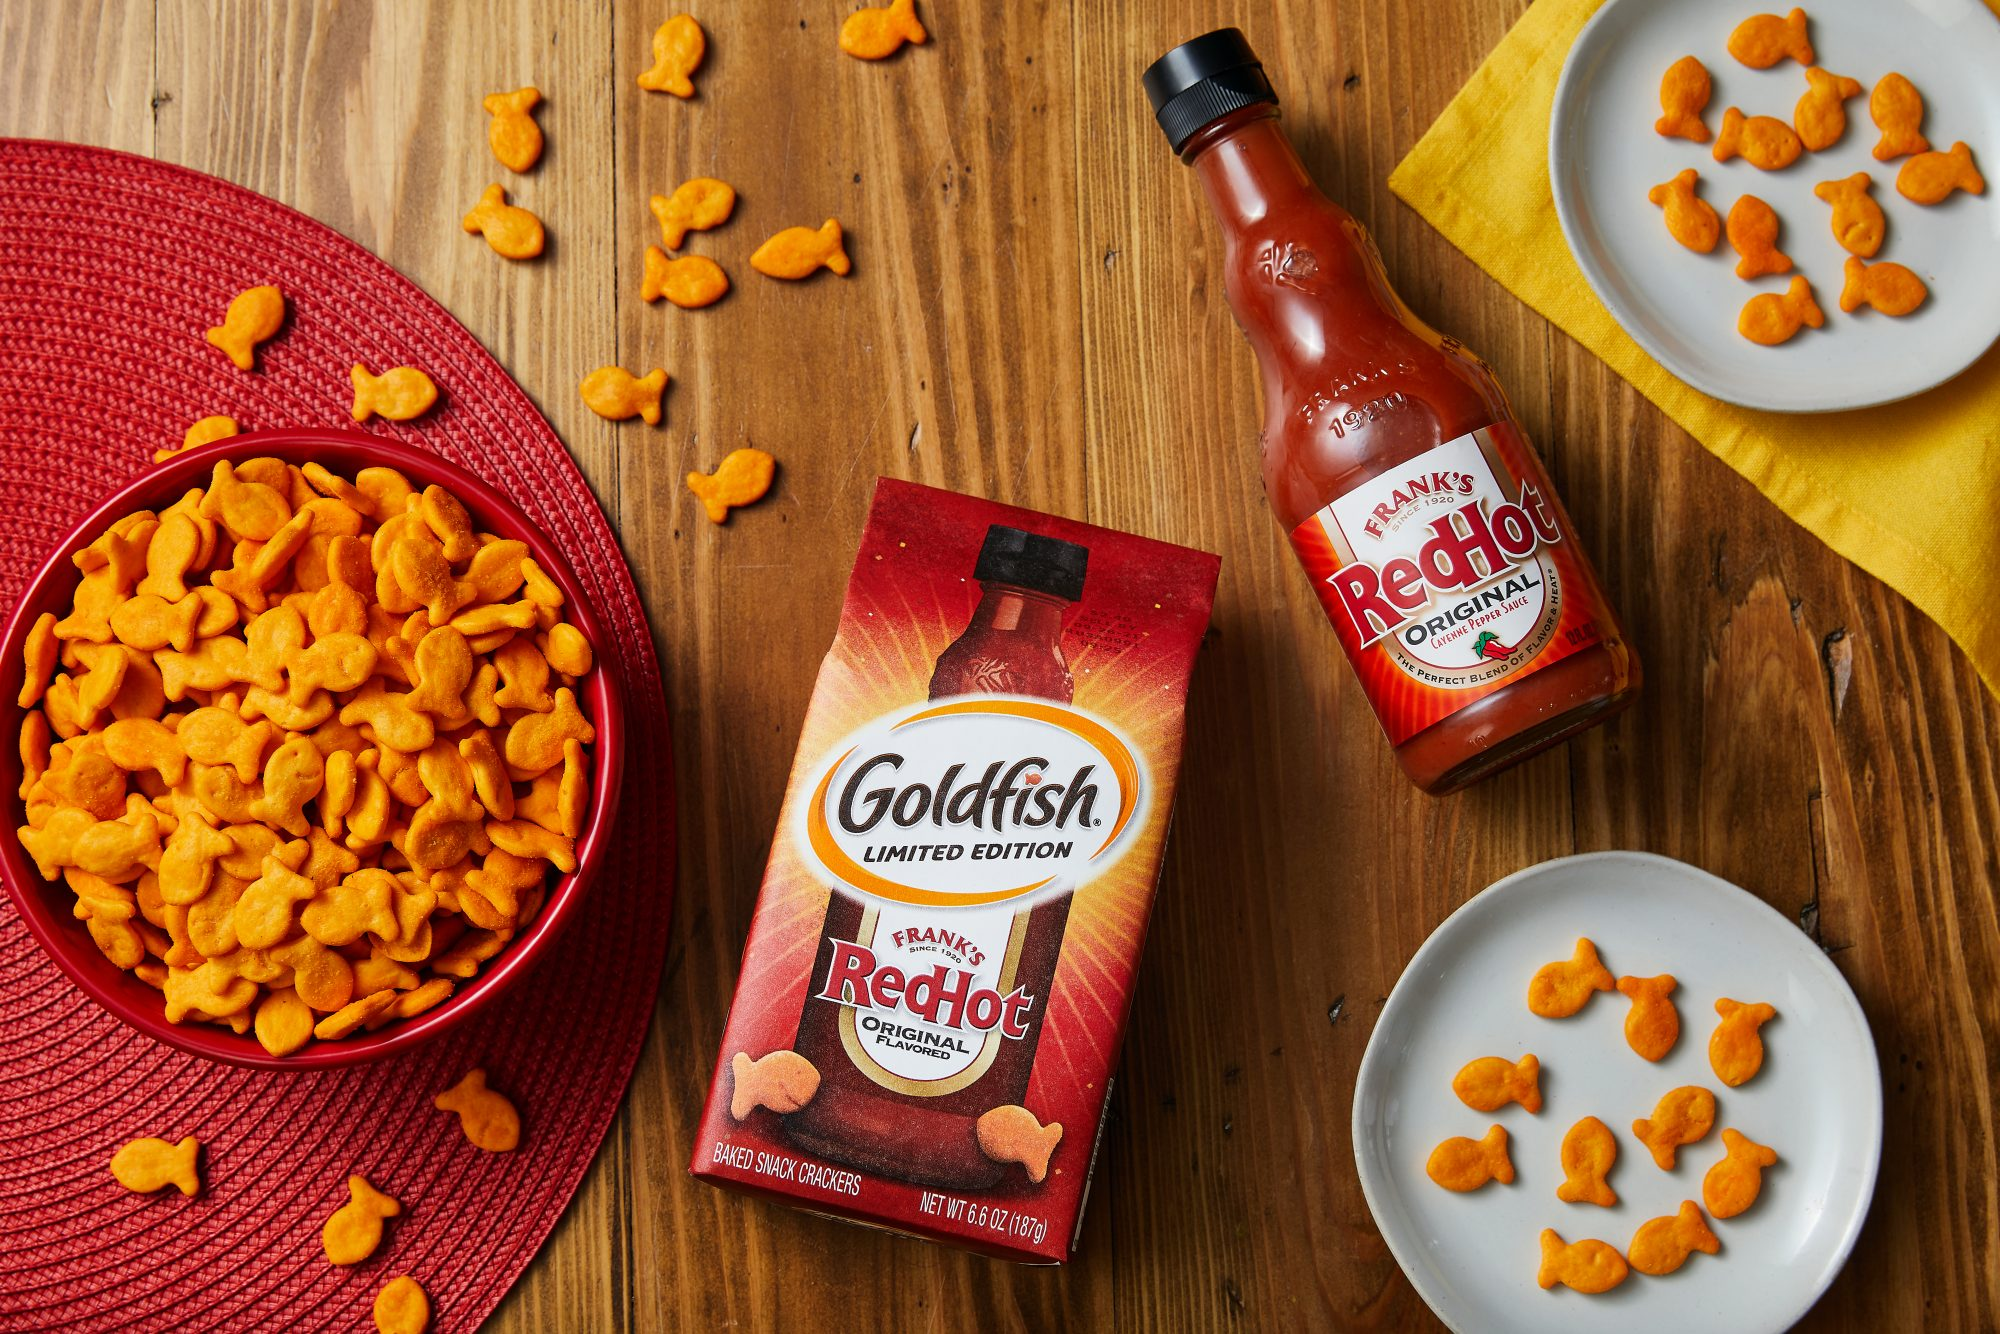 Frank's Red Hot Goldfish crackers